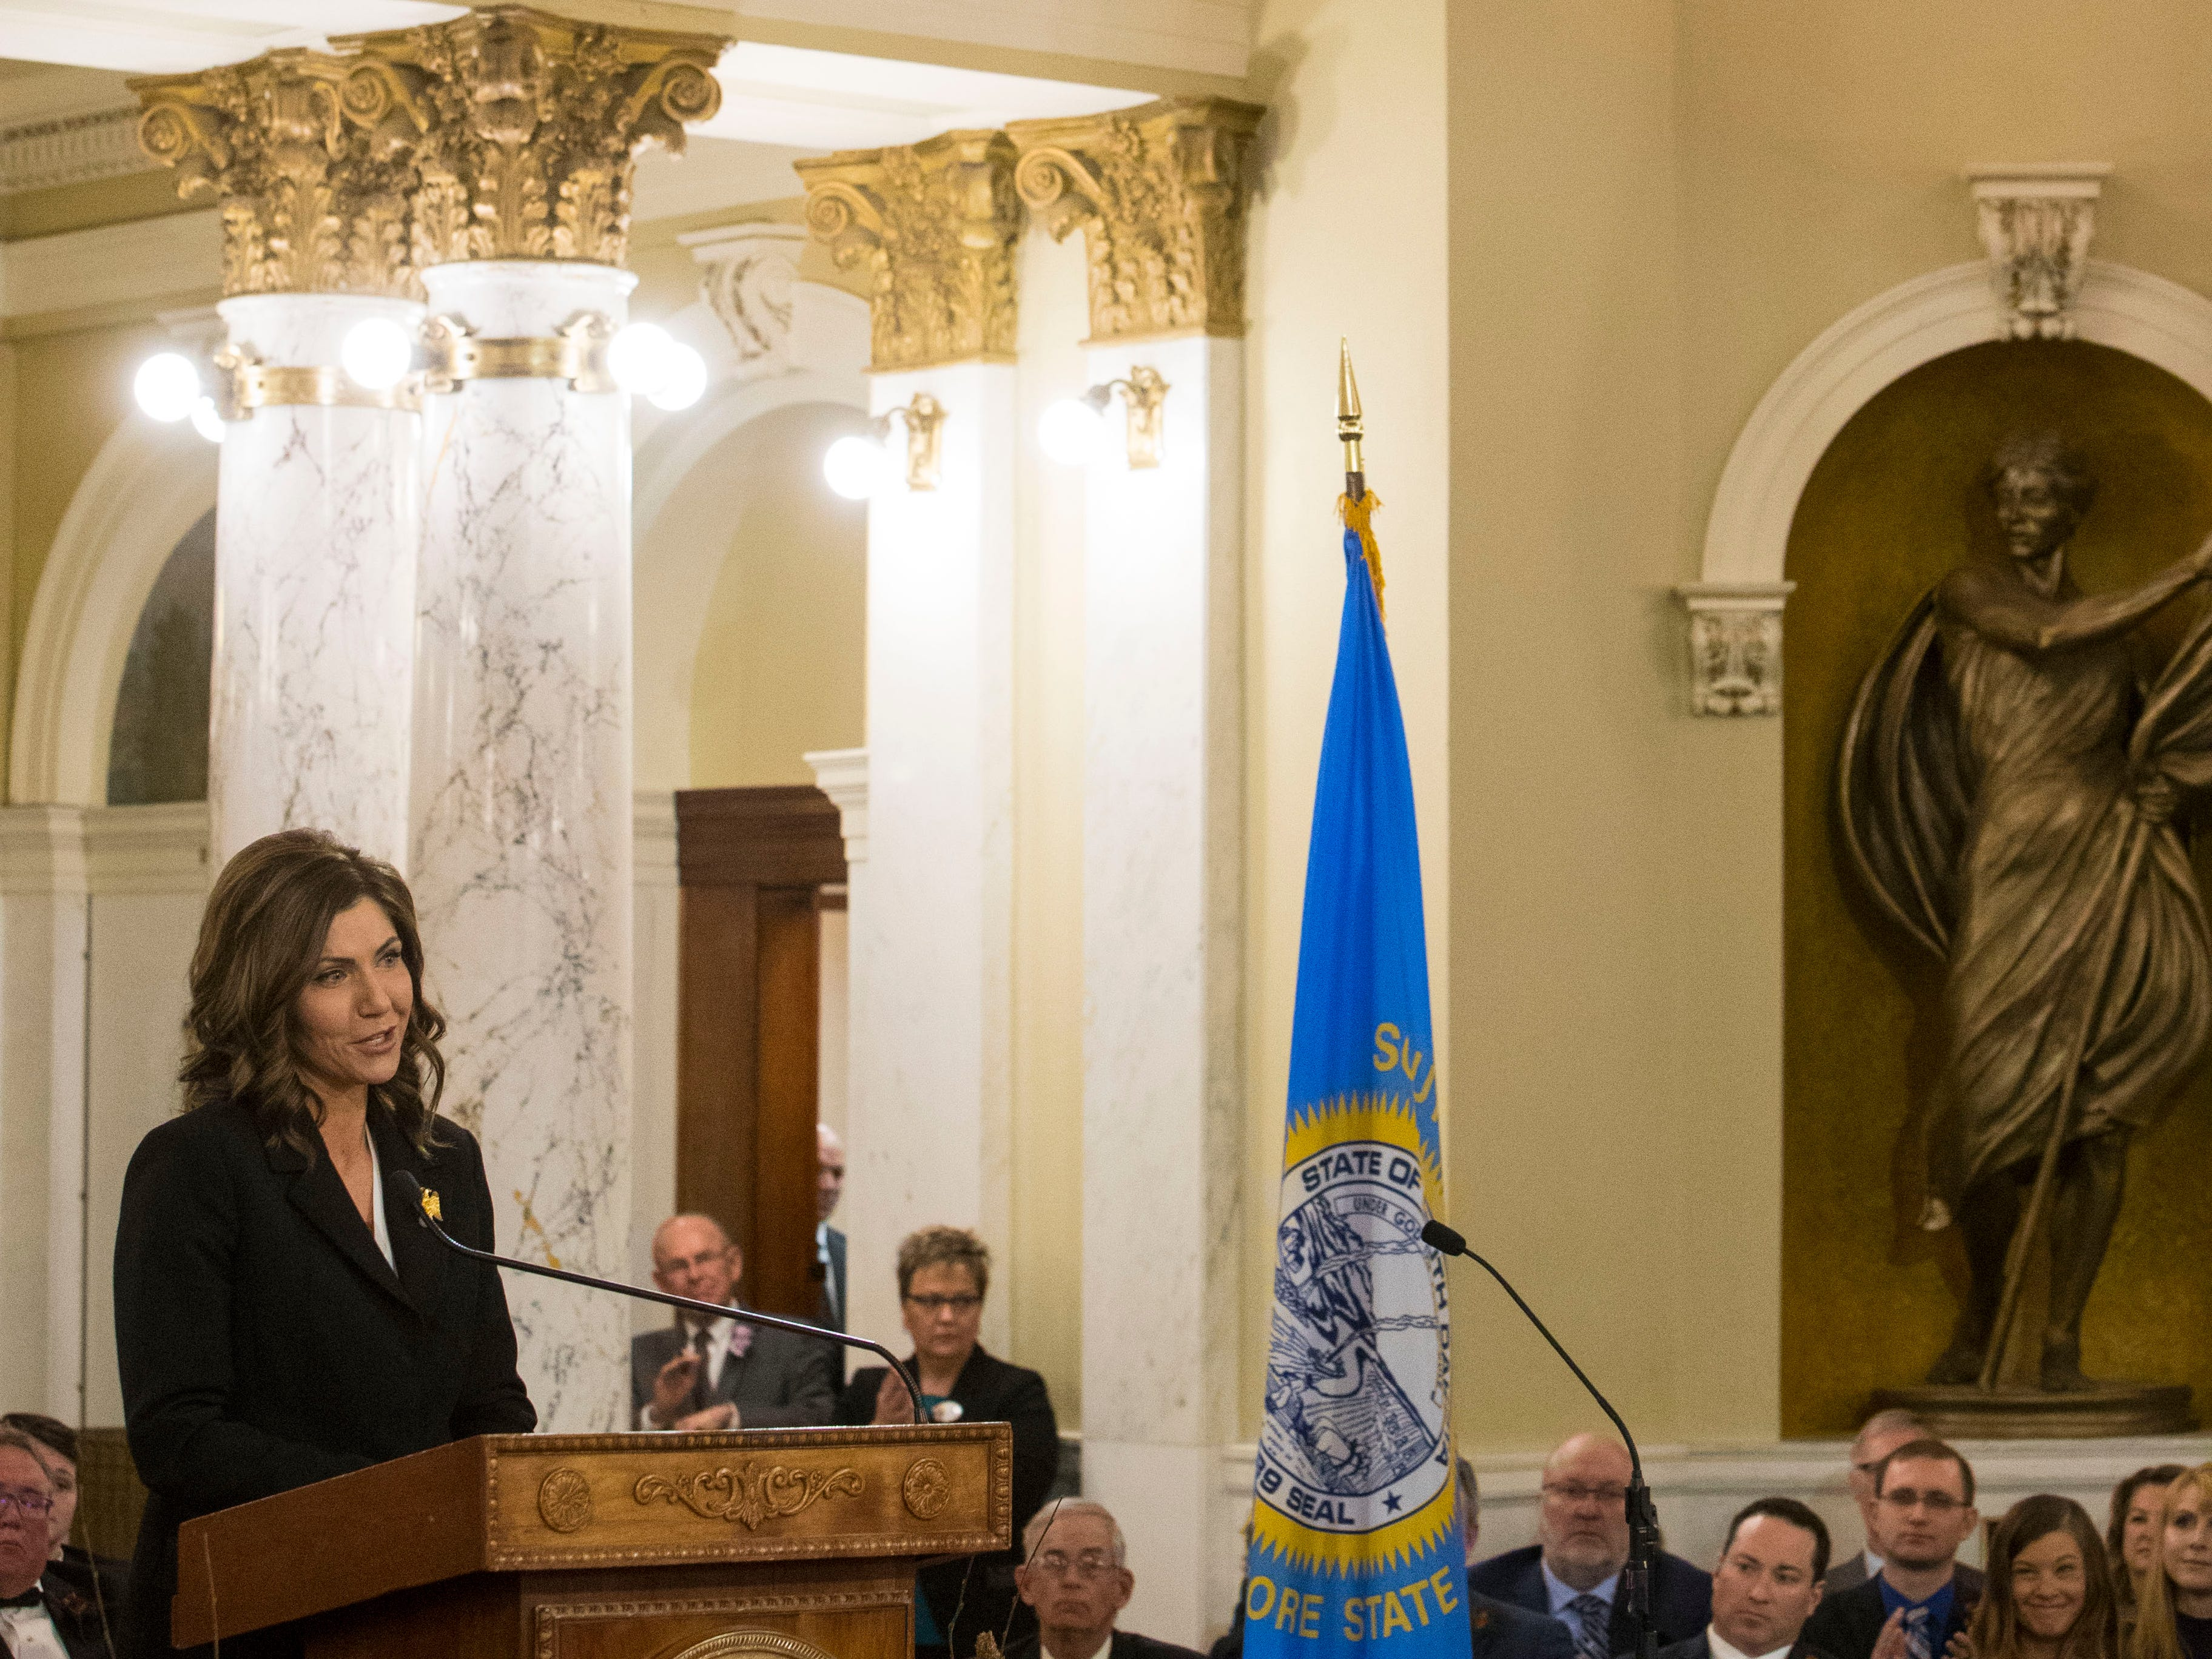 Gov. Kristi Noem speaks during her inaugural address at the state capitol in Pierre on Saturday, Jan. 5.